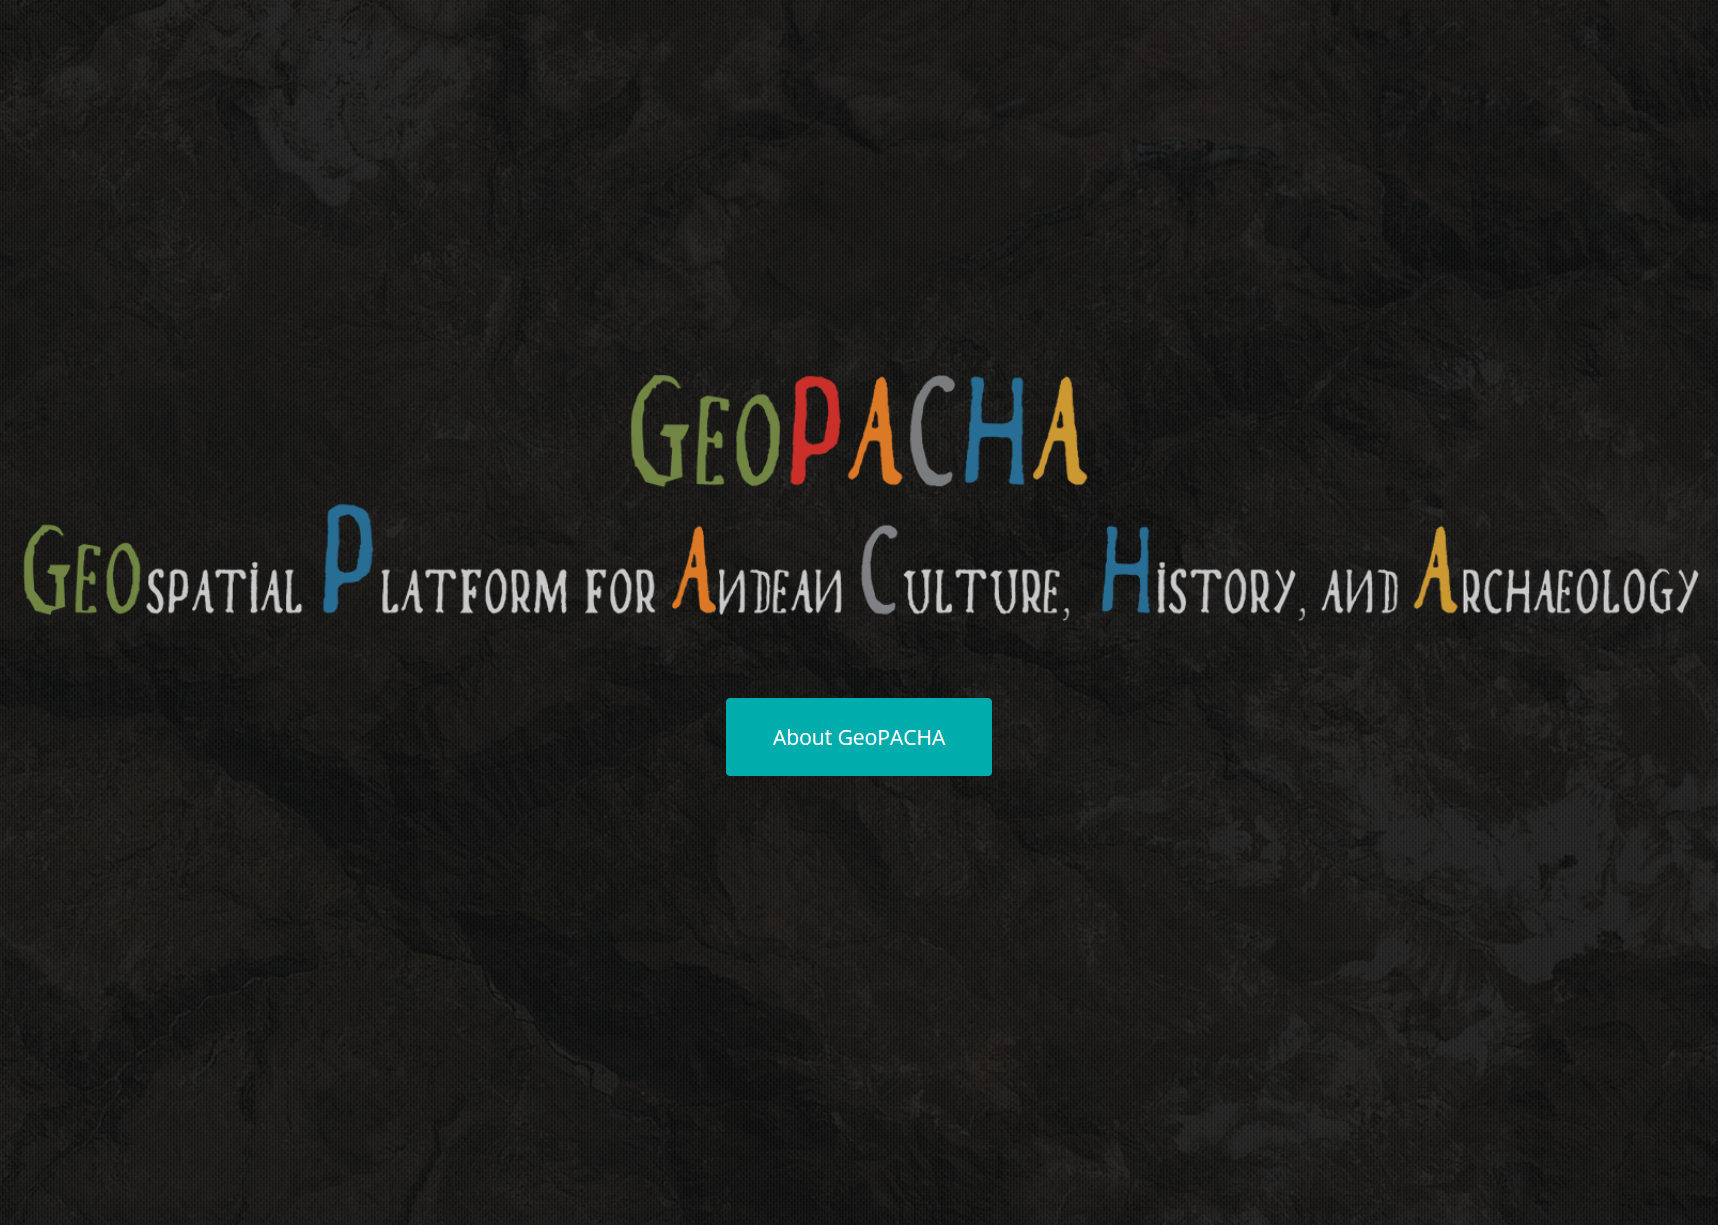 Image of the GeoPacha acronym and full title